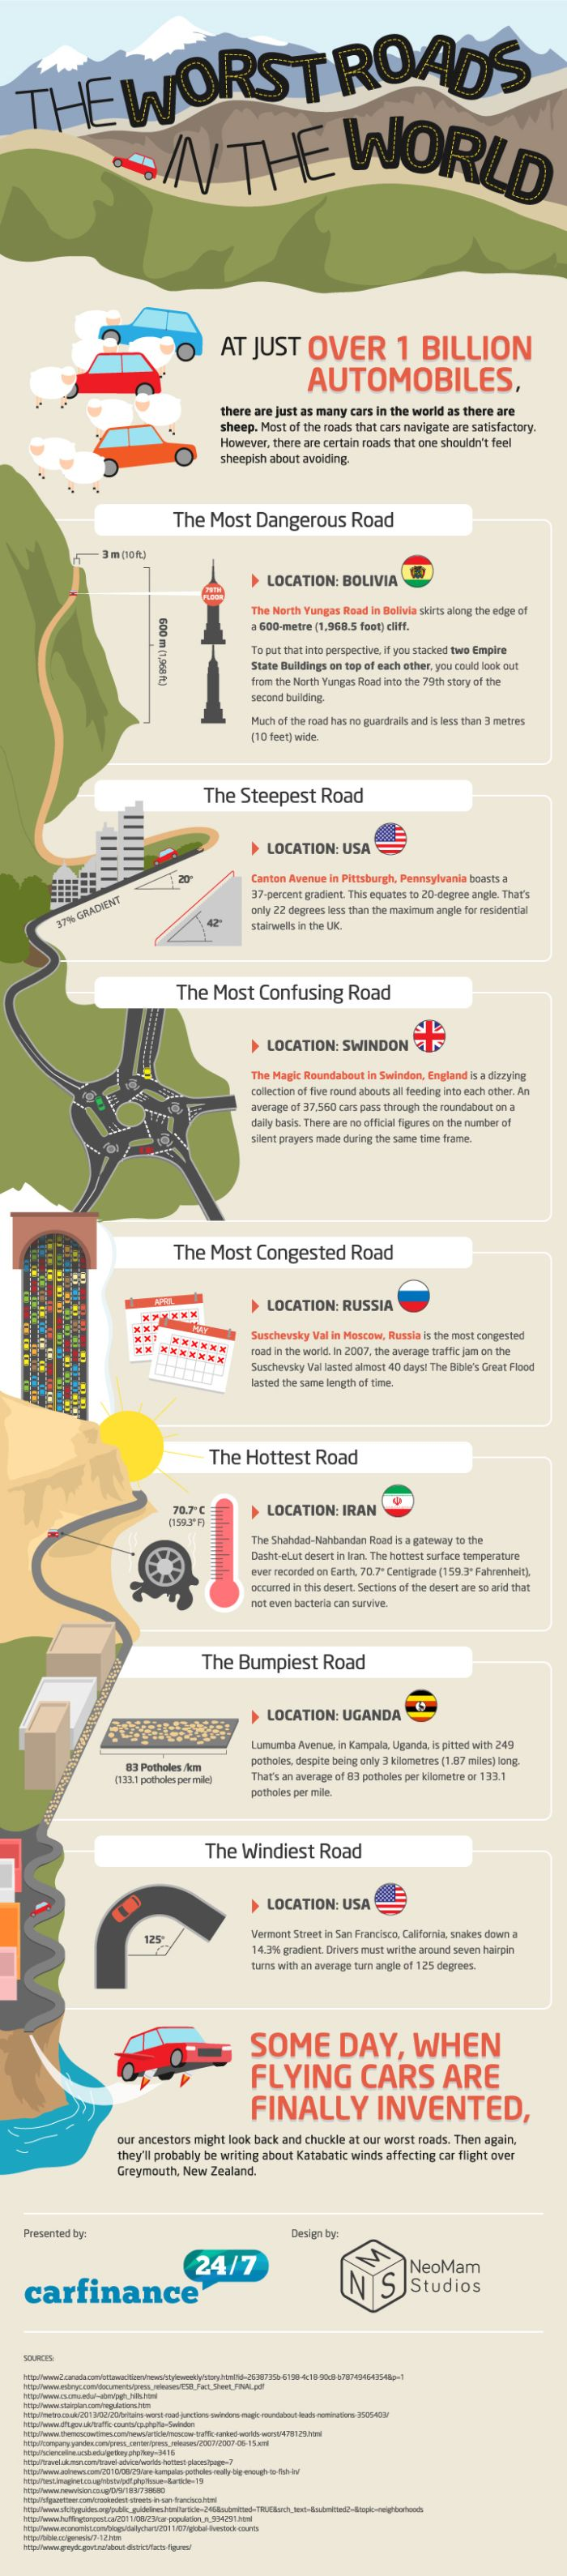 The Worst Roads In The World (Infographic)